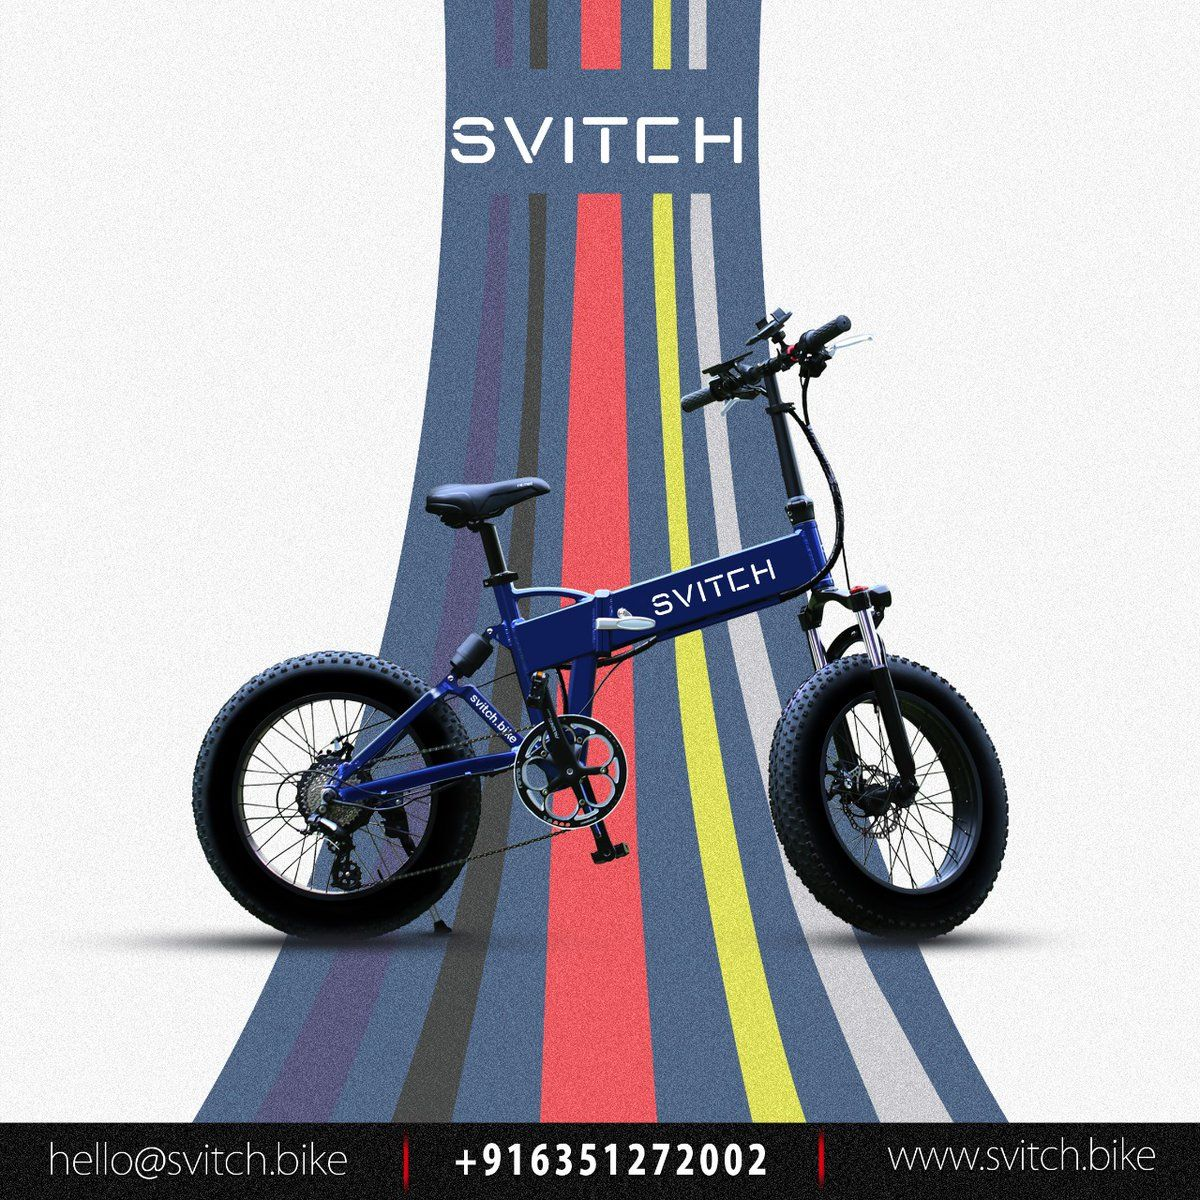 Best Electric Bicycle In India The True Purpose Of Svitch Can Only